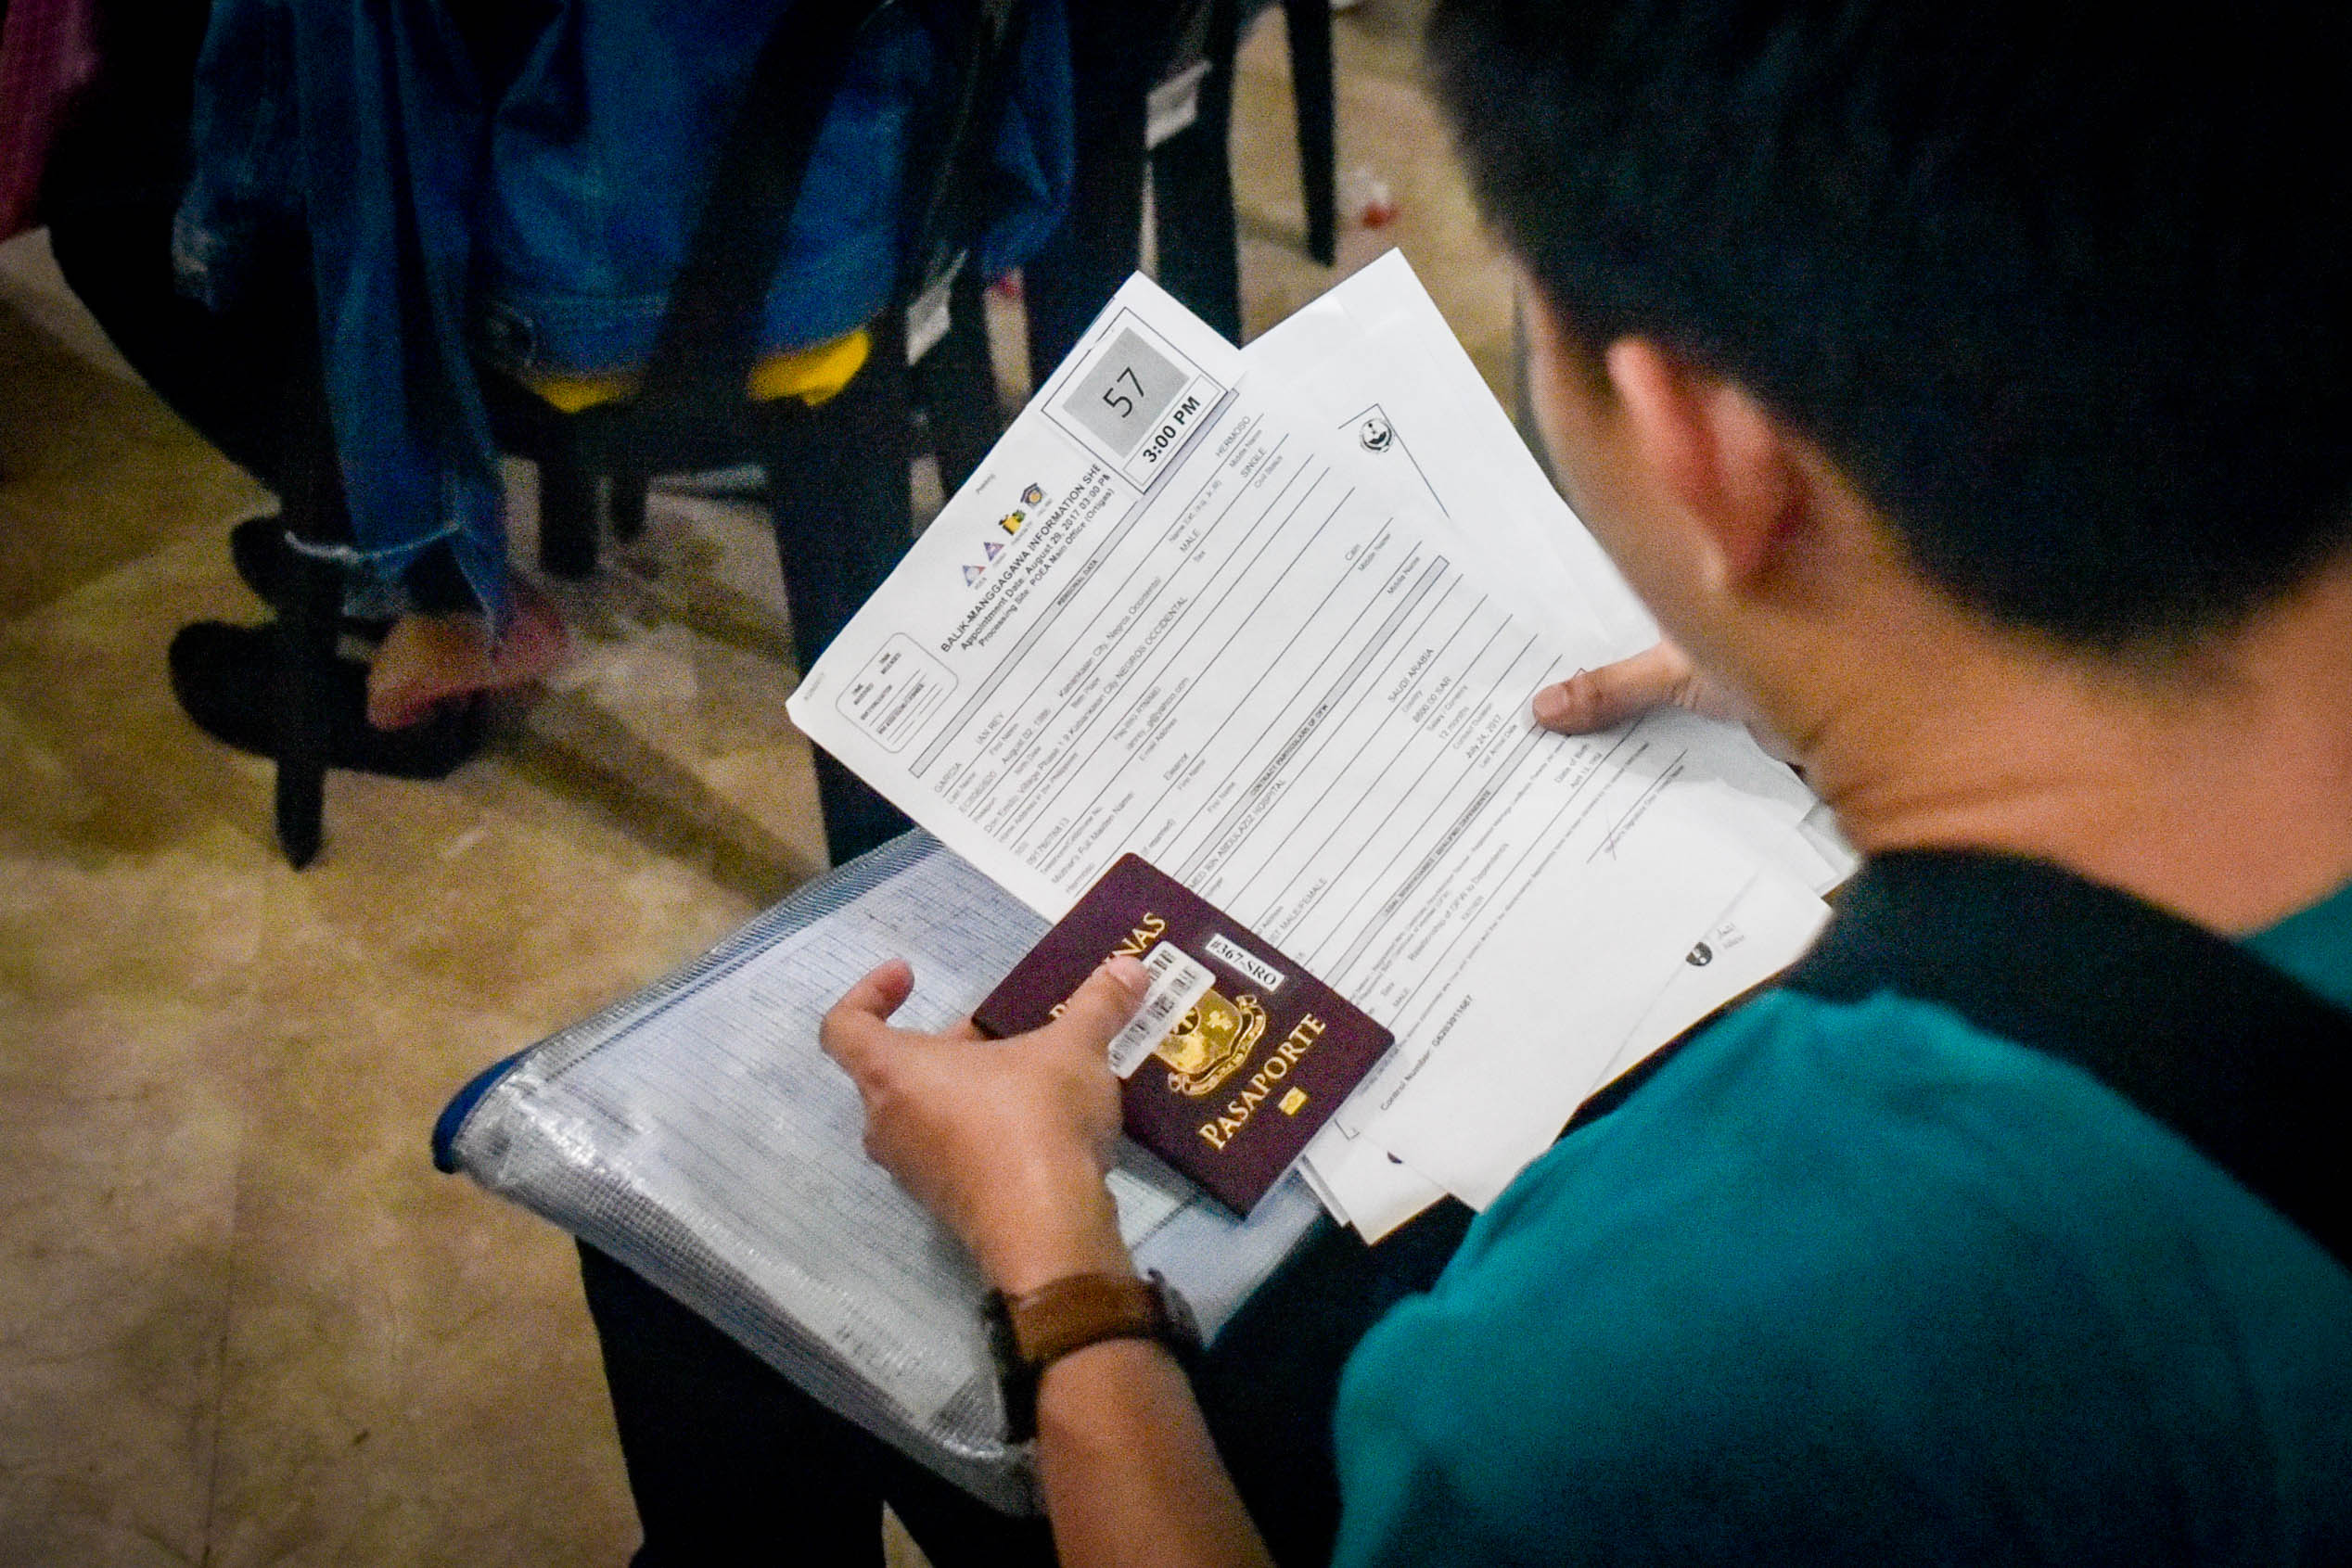 DACA uncertainty leaves lives in balance for four Chicago Catholics